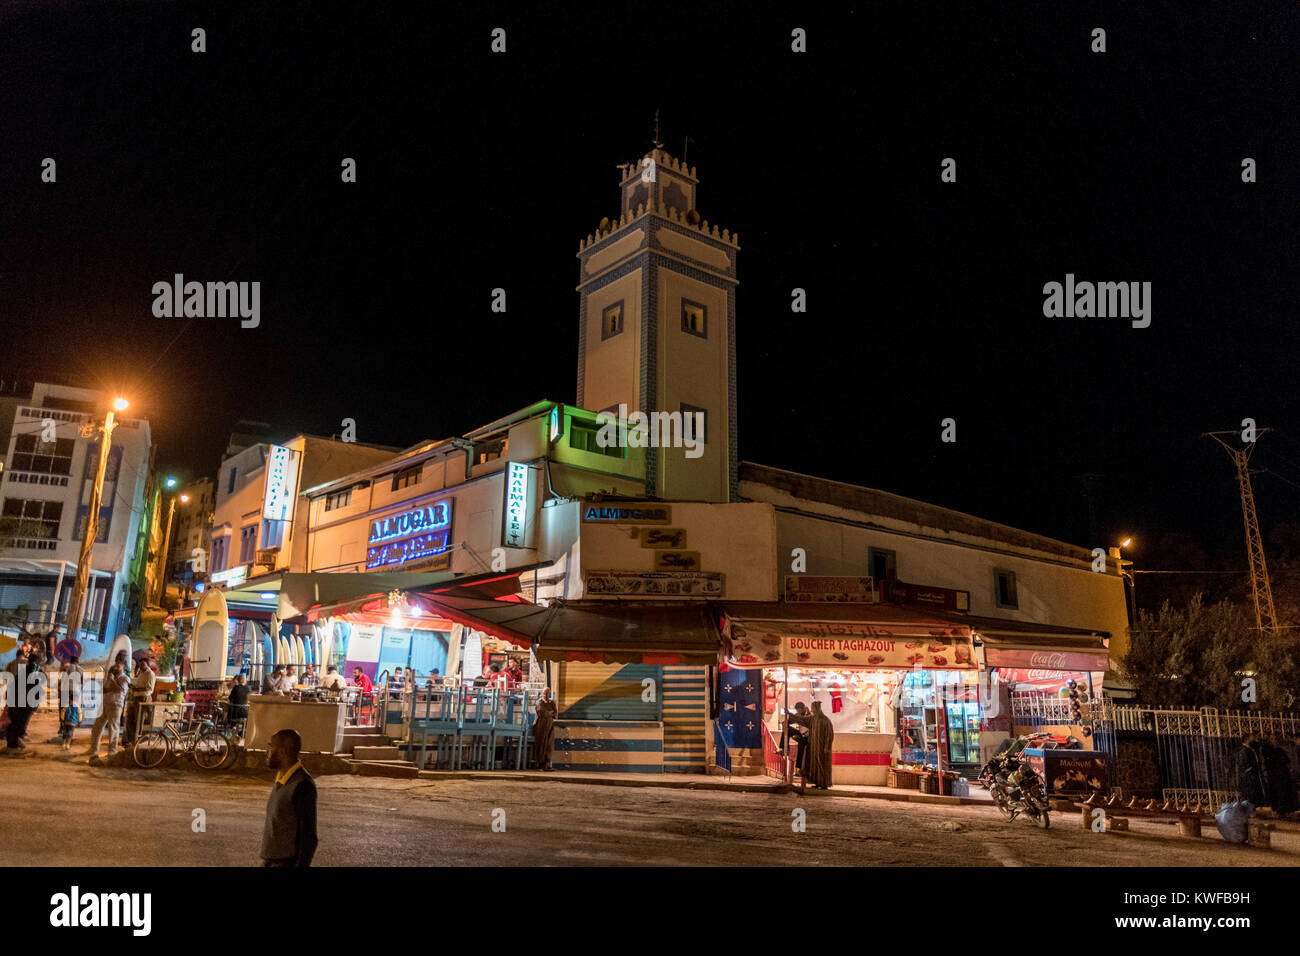 Night time and Mosque, cafe, pharmacy, butcher, gift shop all in one, Taghazout. - Stock Image